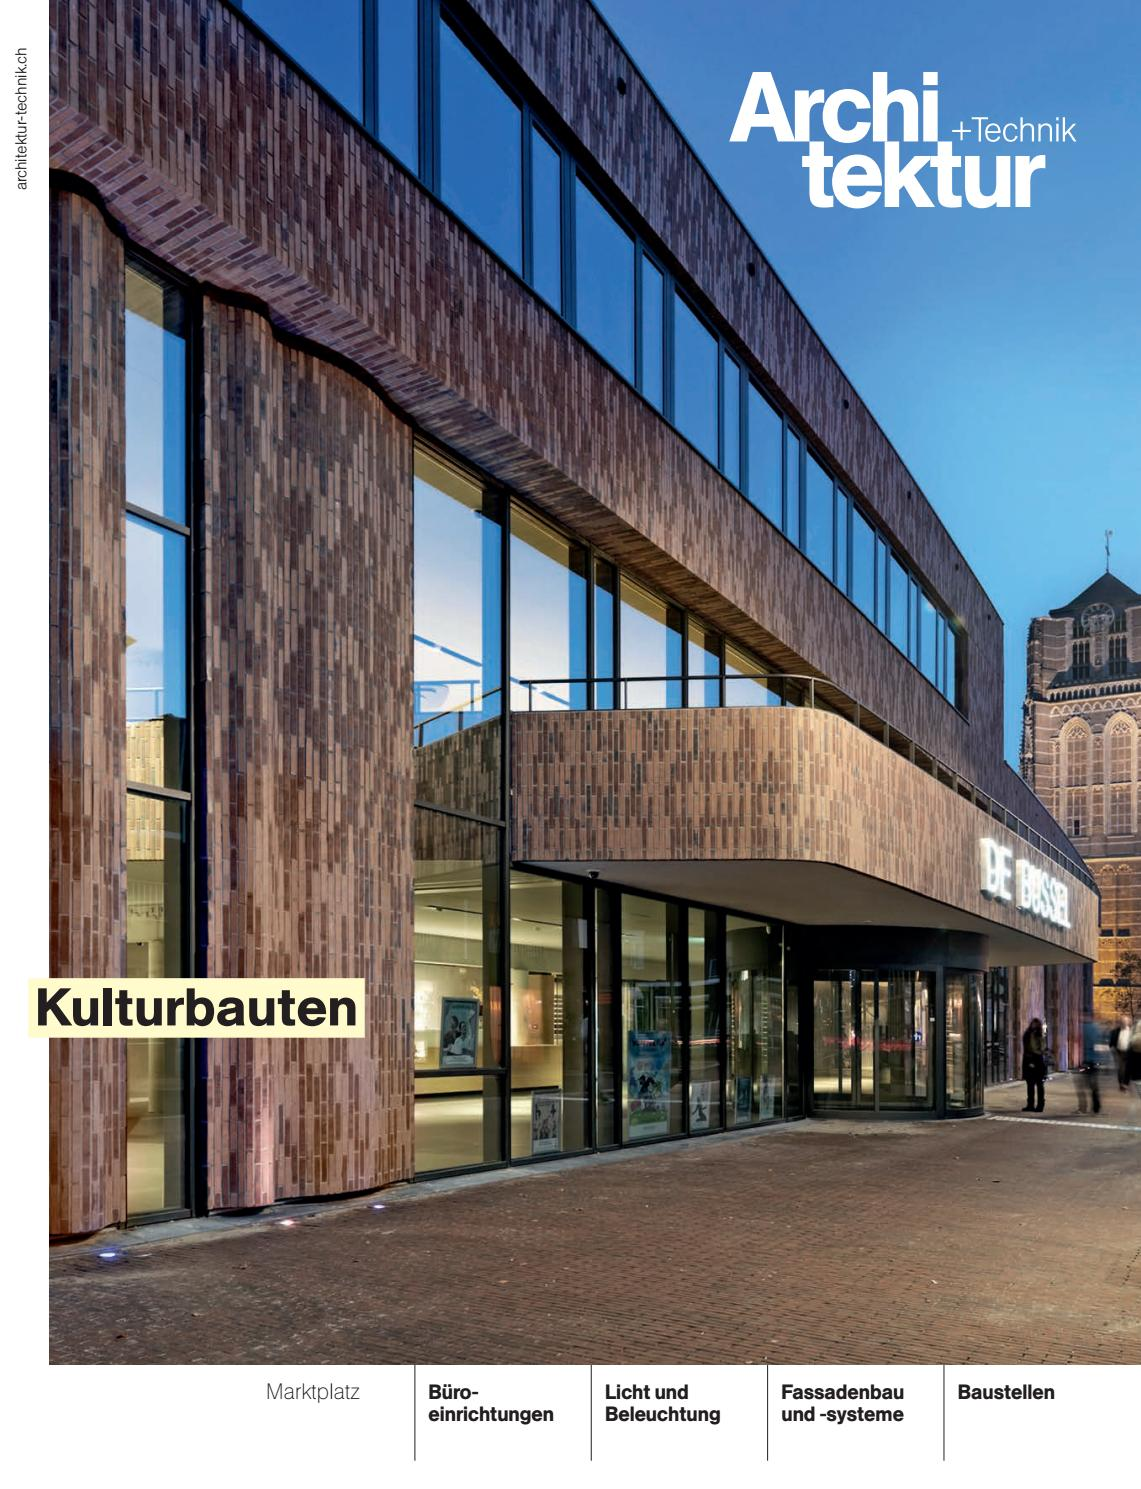 Skelettbau architektur ideen fur was wohndesign - Skelettbau architektur ...